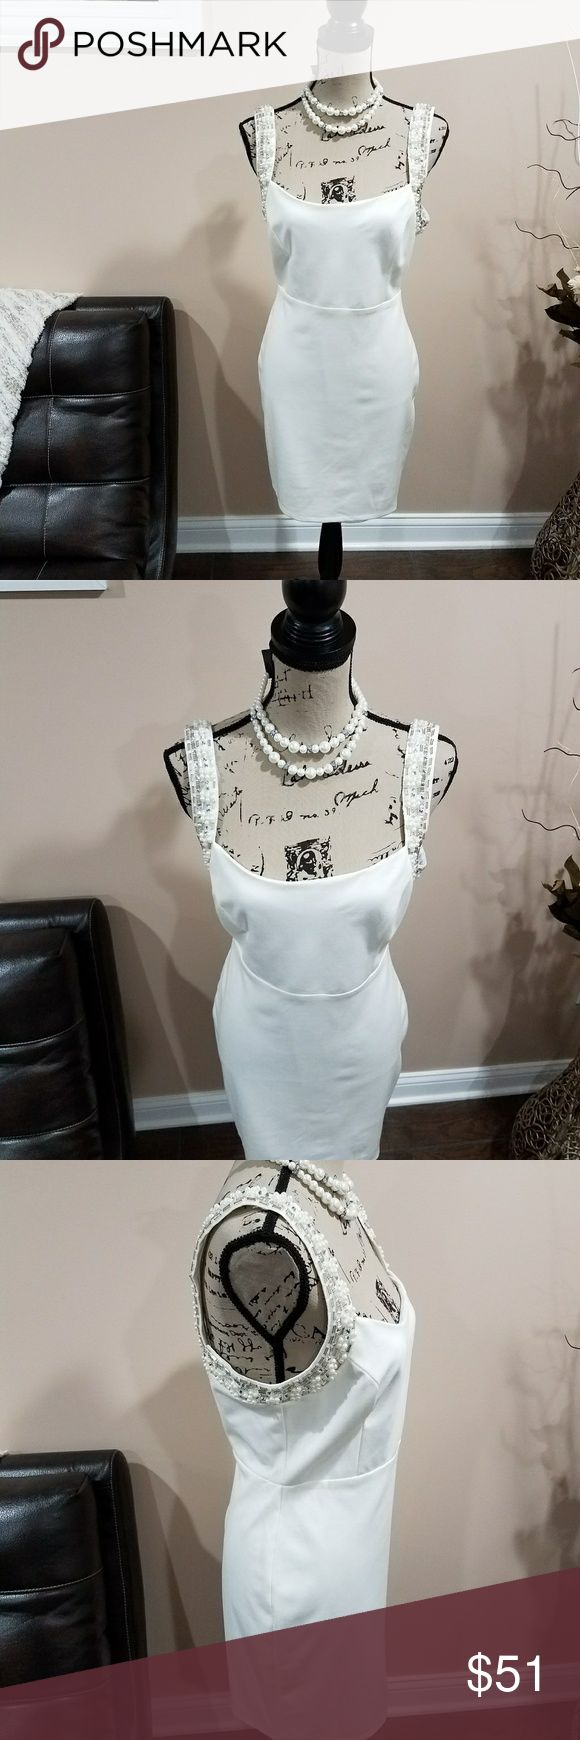 "LuLu's Dress & FREE Necklace BEAUTIFUL LuLu's Dress (Size L/Lightly Used/Dry Cleaned). Vera Wang Necklace New Included. 26"" length 38"" chest 36"" waist  OFFERS Accepted  Reference Item No: 25  The Outfit Is Not Complete Until You Smile! Lulu's Dresses"